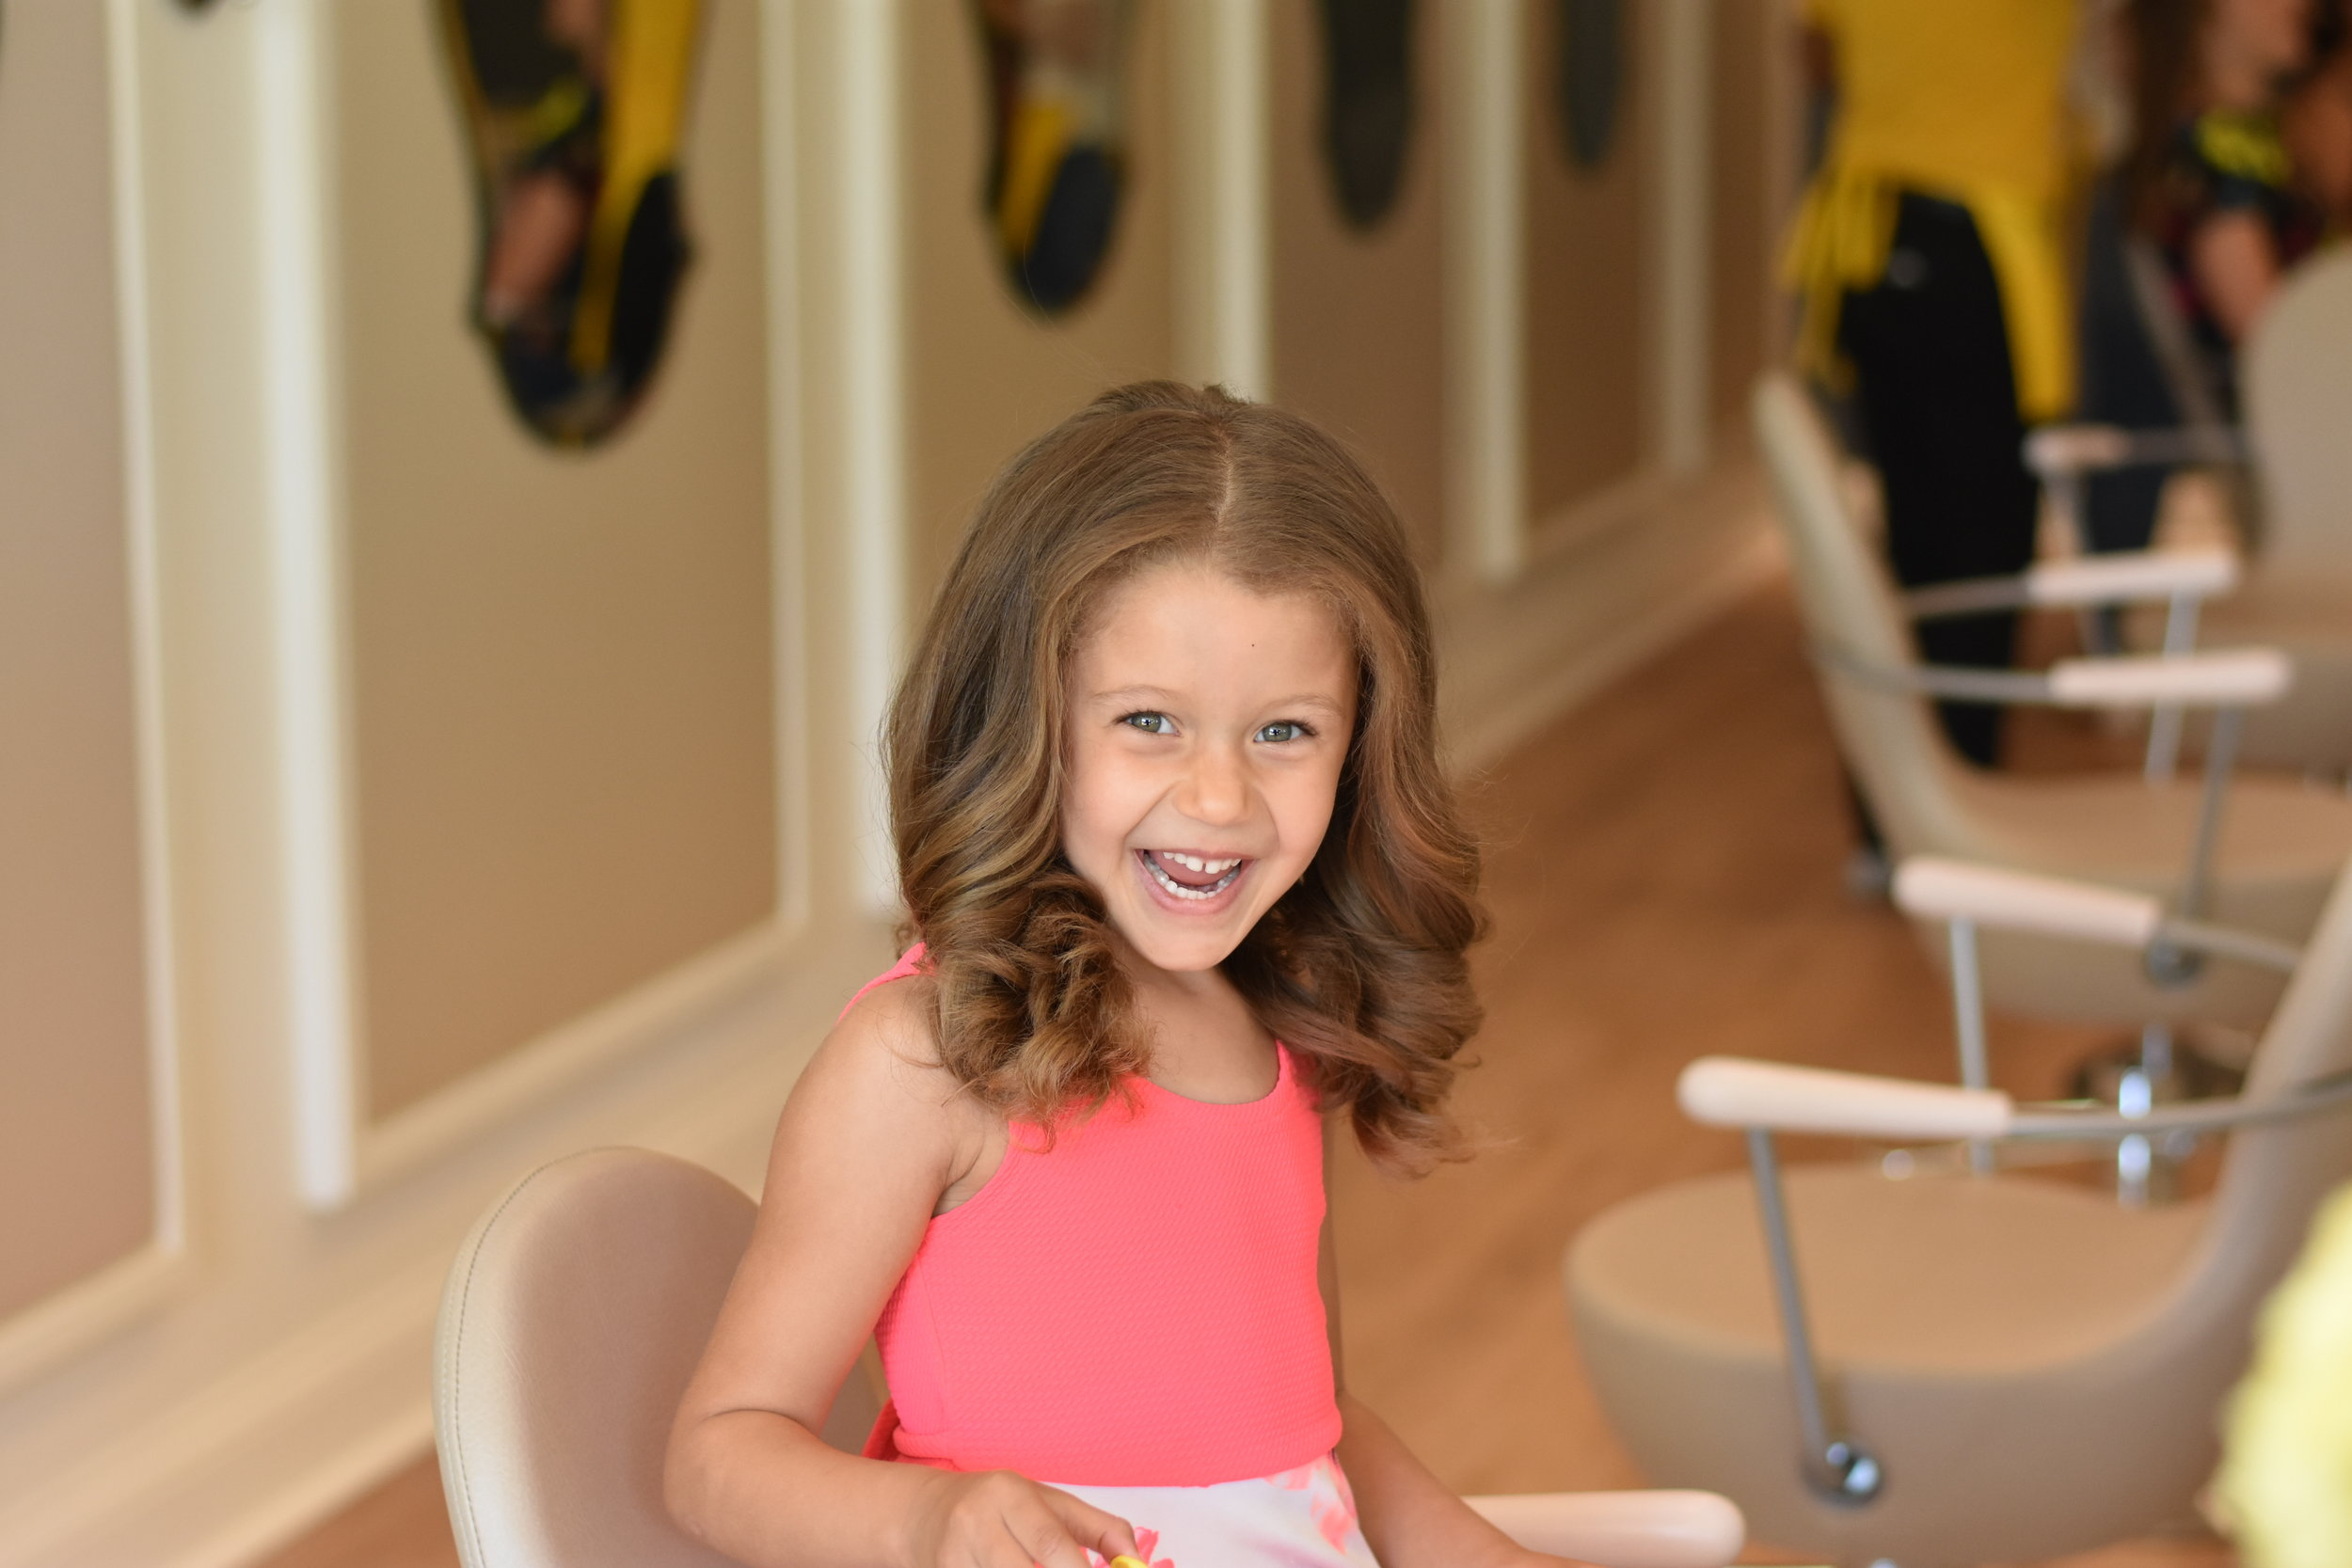 Image of little girl with new hairstyle at DryBar salon in Indianapolis.